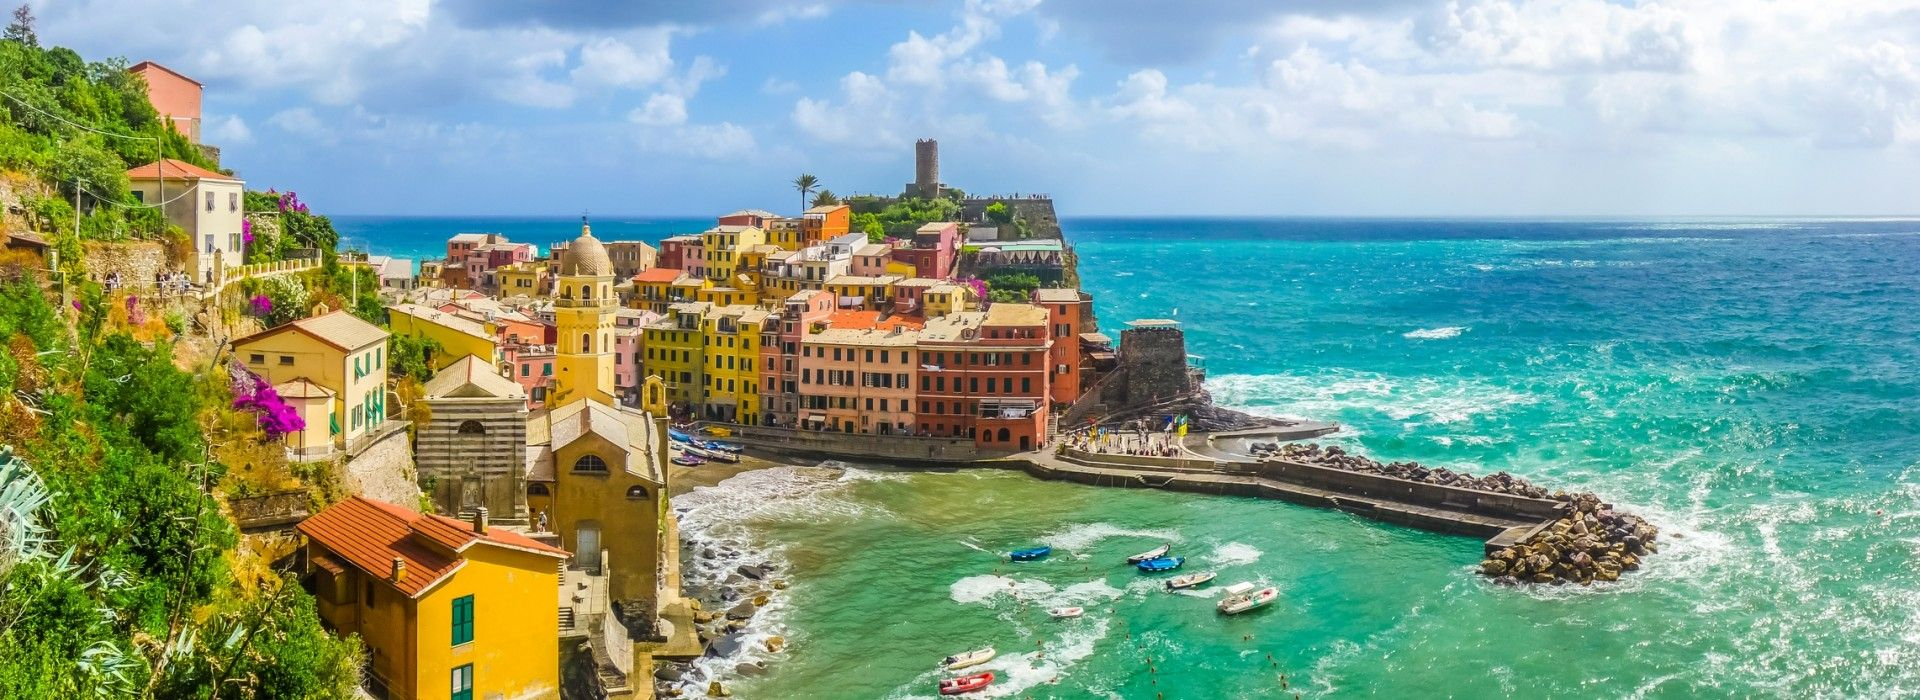 Sailing, yachting and motor boating Tours in Italy